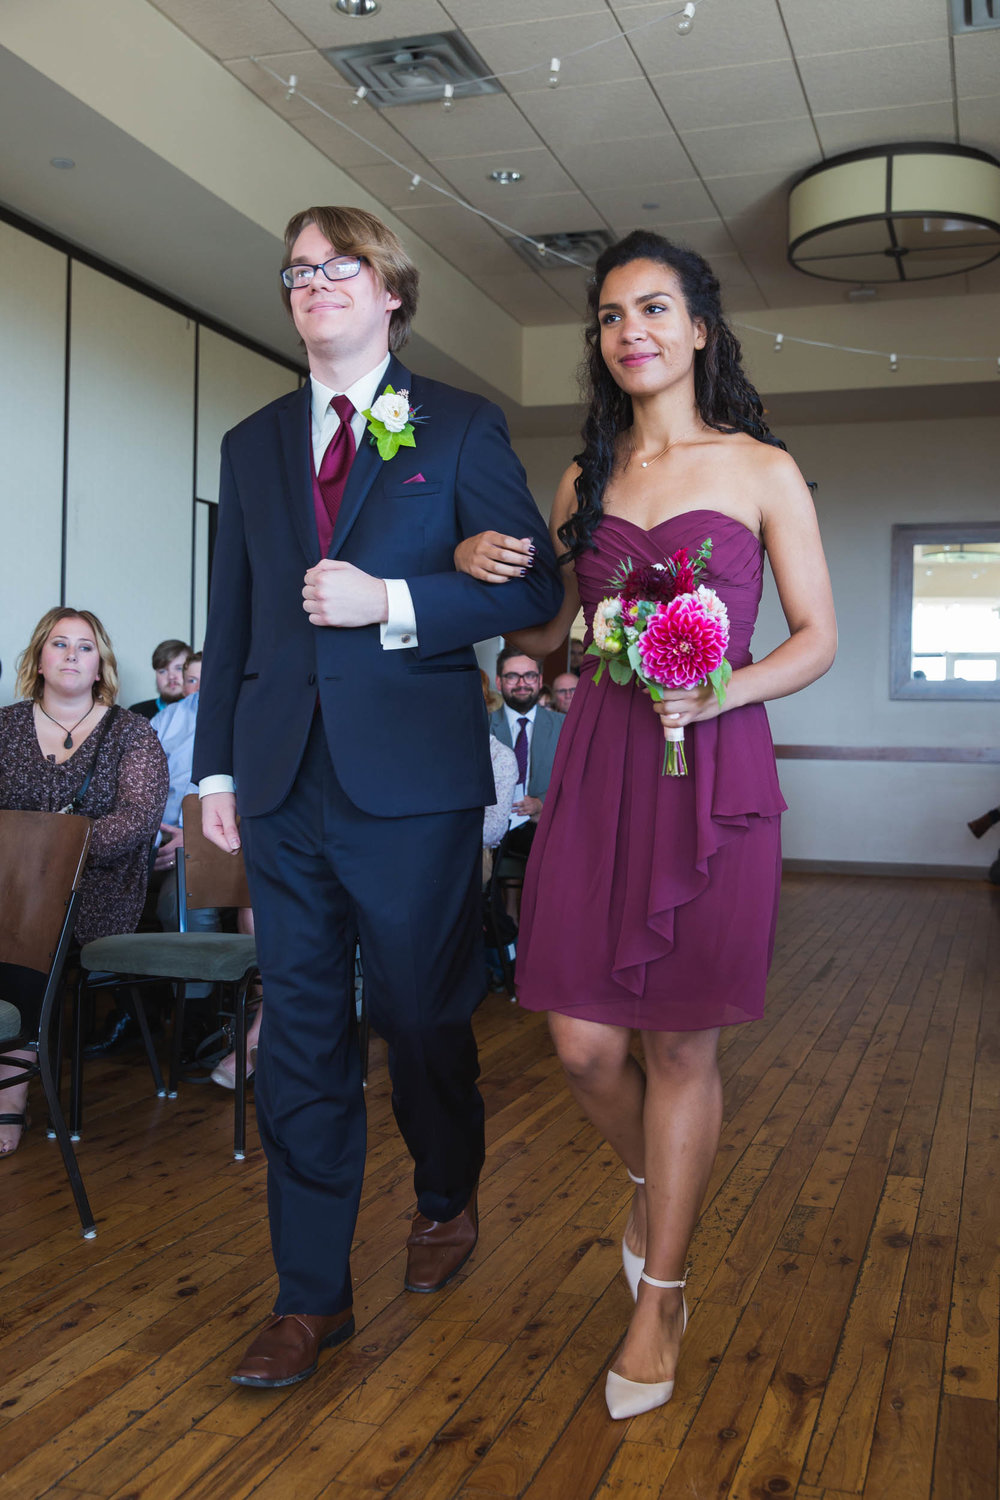 courtney and tom's wedding at pinstripes by anna schultz photography-46.jpg